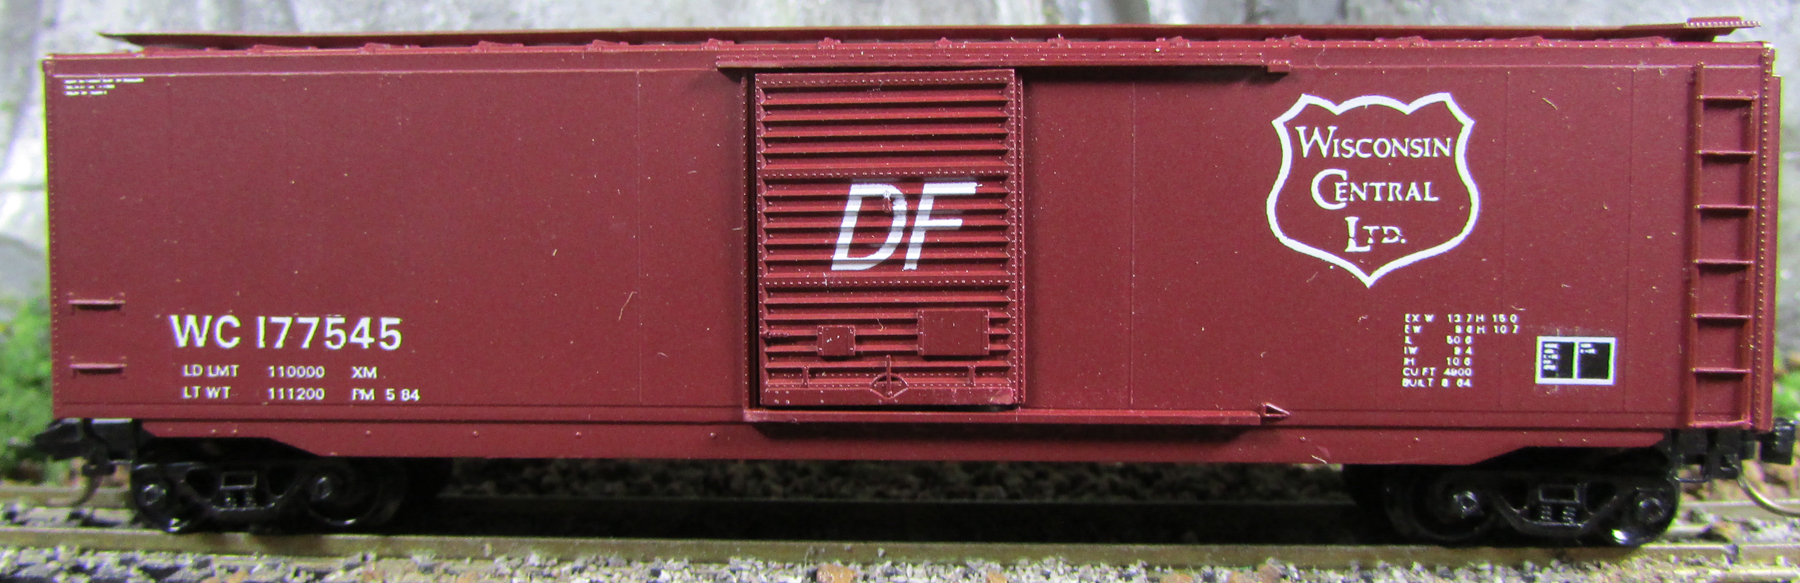 N Scale - Brooklyn Locomotive Works - BLW 1004 - Boxcar, 50 Foot, PS-1 - Wisconsin Central - 177545